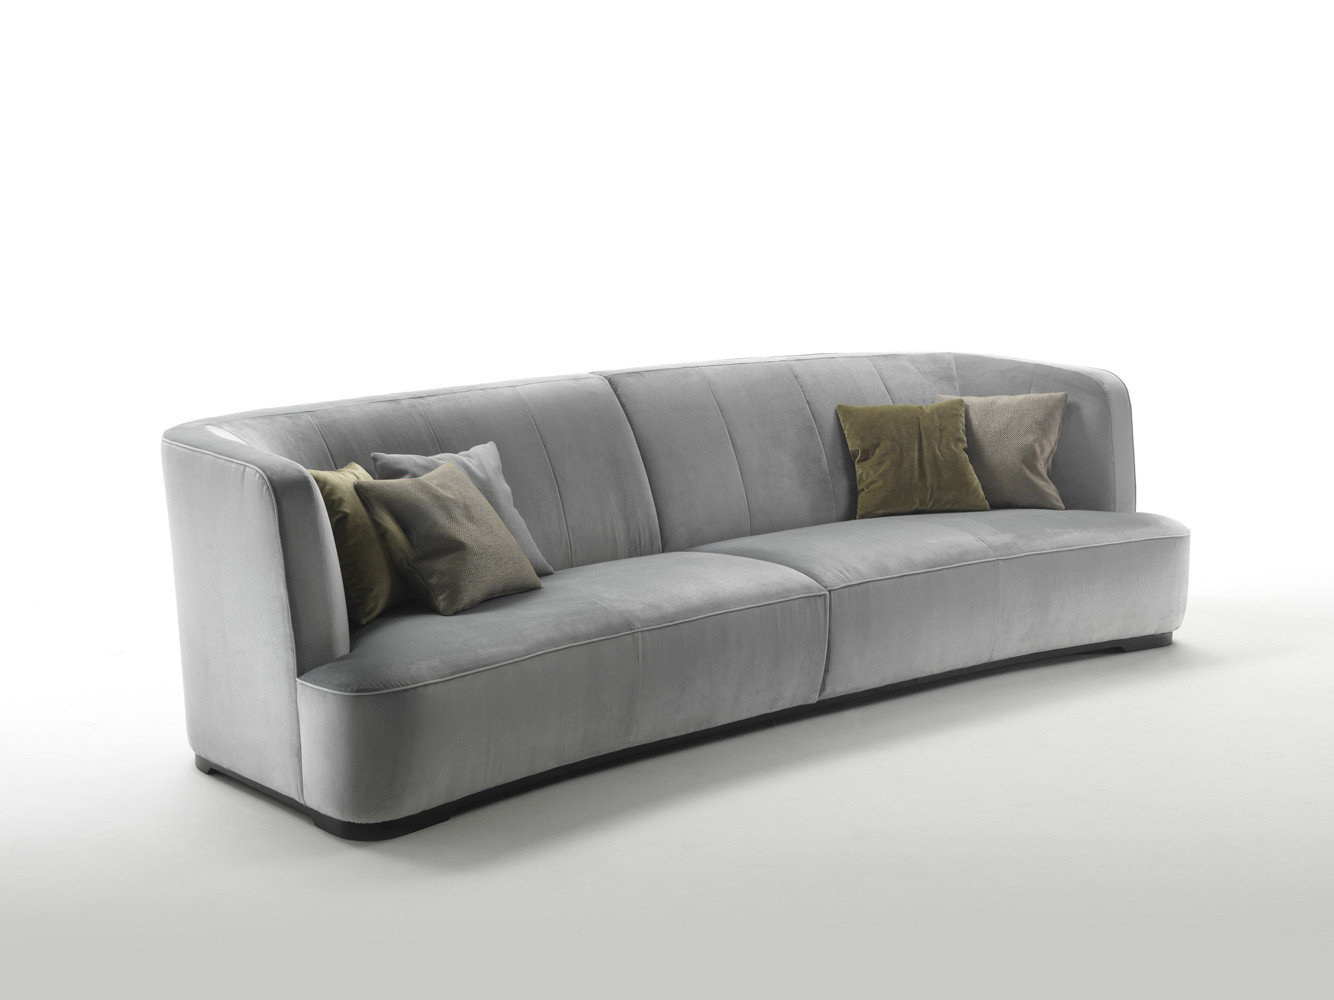 Flexform mood francis sofa for What does contemporary furniture mean